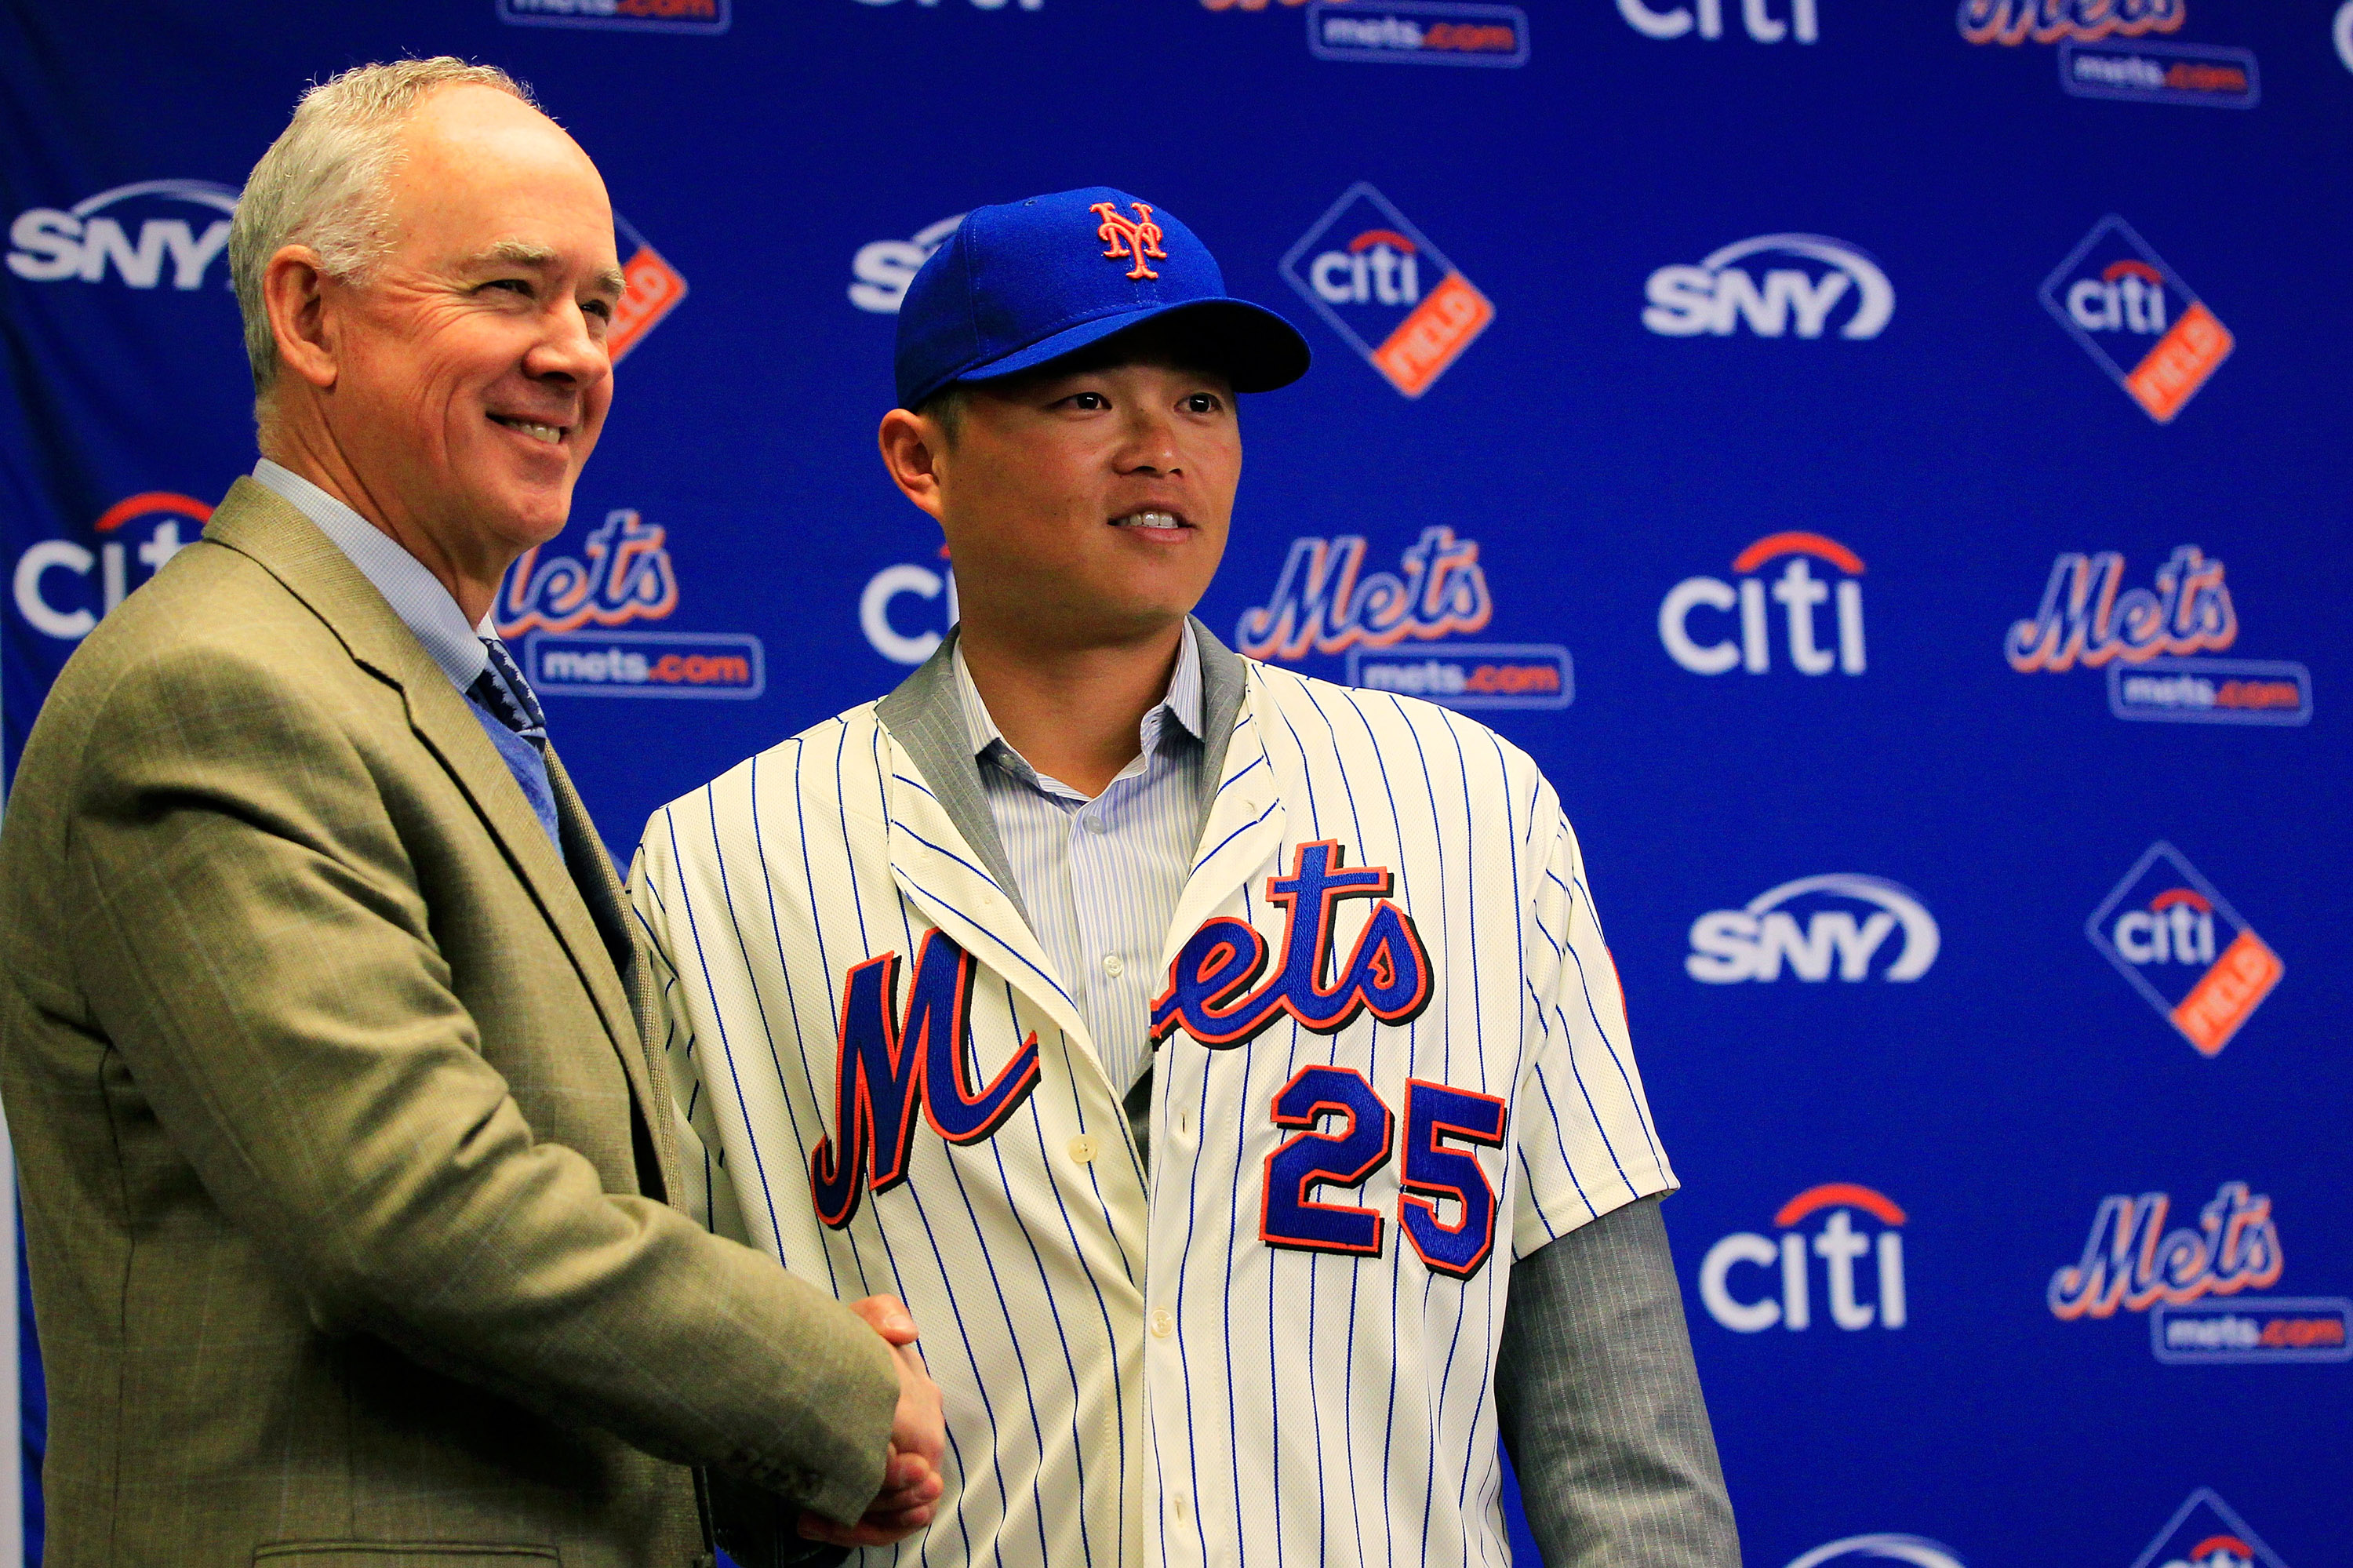 NEW YORK, NY - JANUARY 26:  New York Mets General Manager Sandy Alderson introduces new Mets player Chin-lung Hu during a press conference  at Citi Field on January 26, 2011 in the Flushing neighborhood, of the Queens borough of New York City.  (Photo by